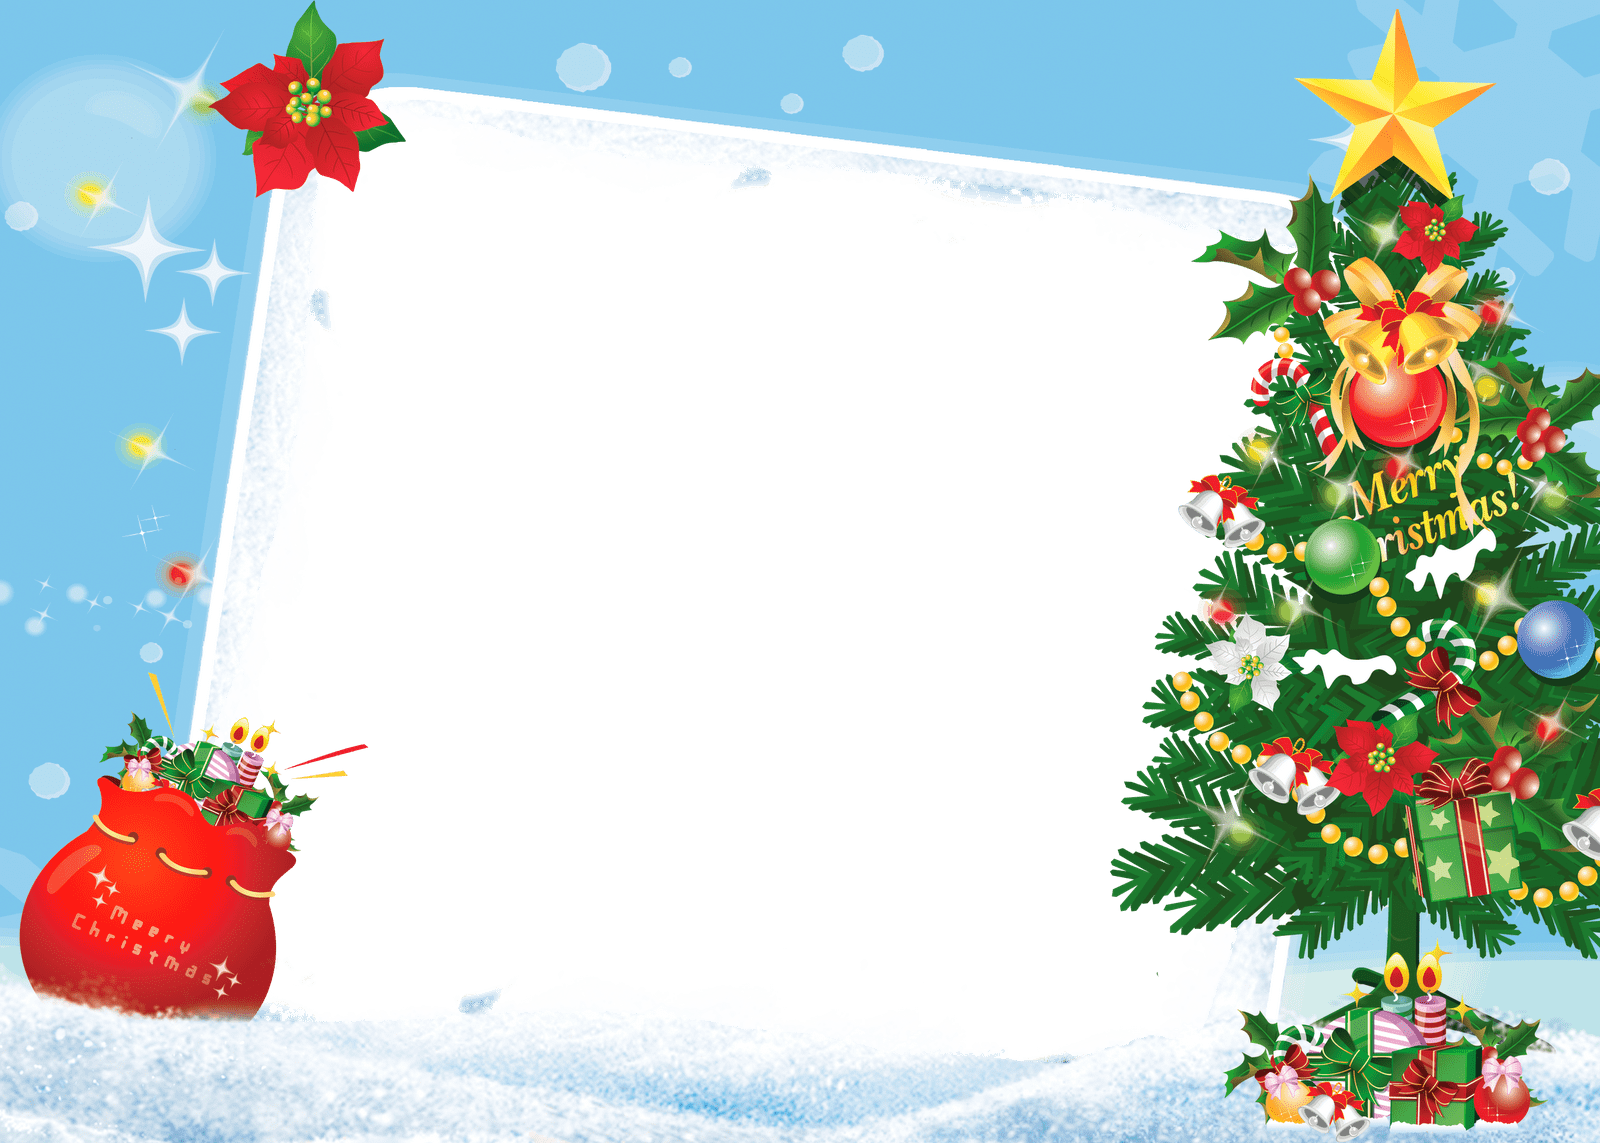 Merry Christmas Frame Tree Gifts transparent PNG.